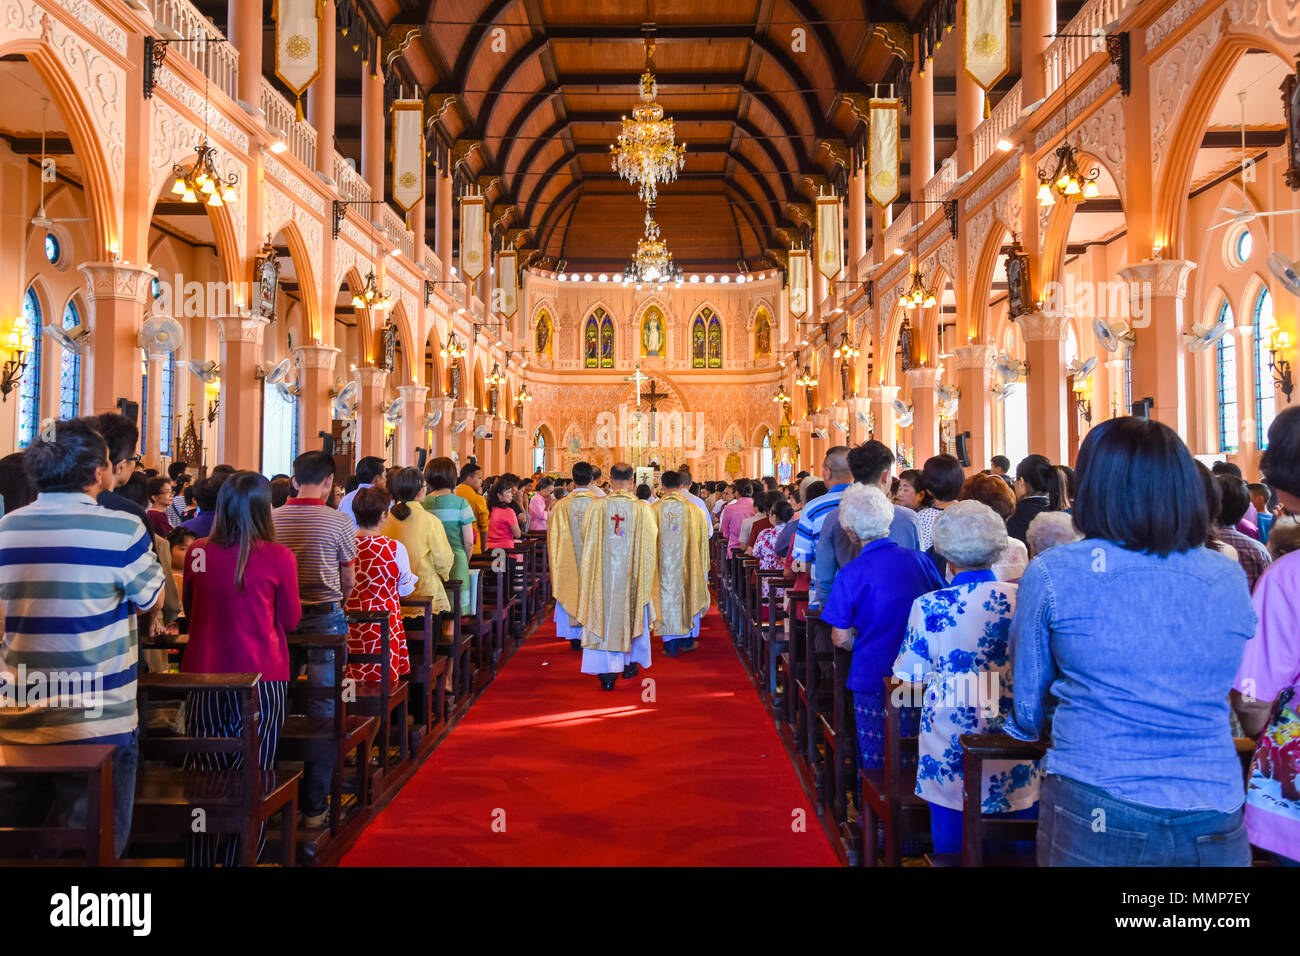 Chantaburi, Thailand - January 1, 2016: Group of pastors walking into Christian beautiful church where Chistian people attending religion ceremony in  - Stock Image